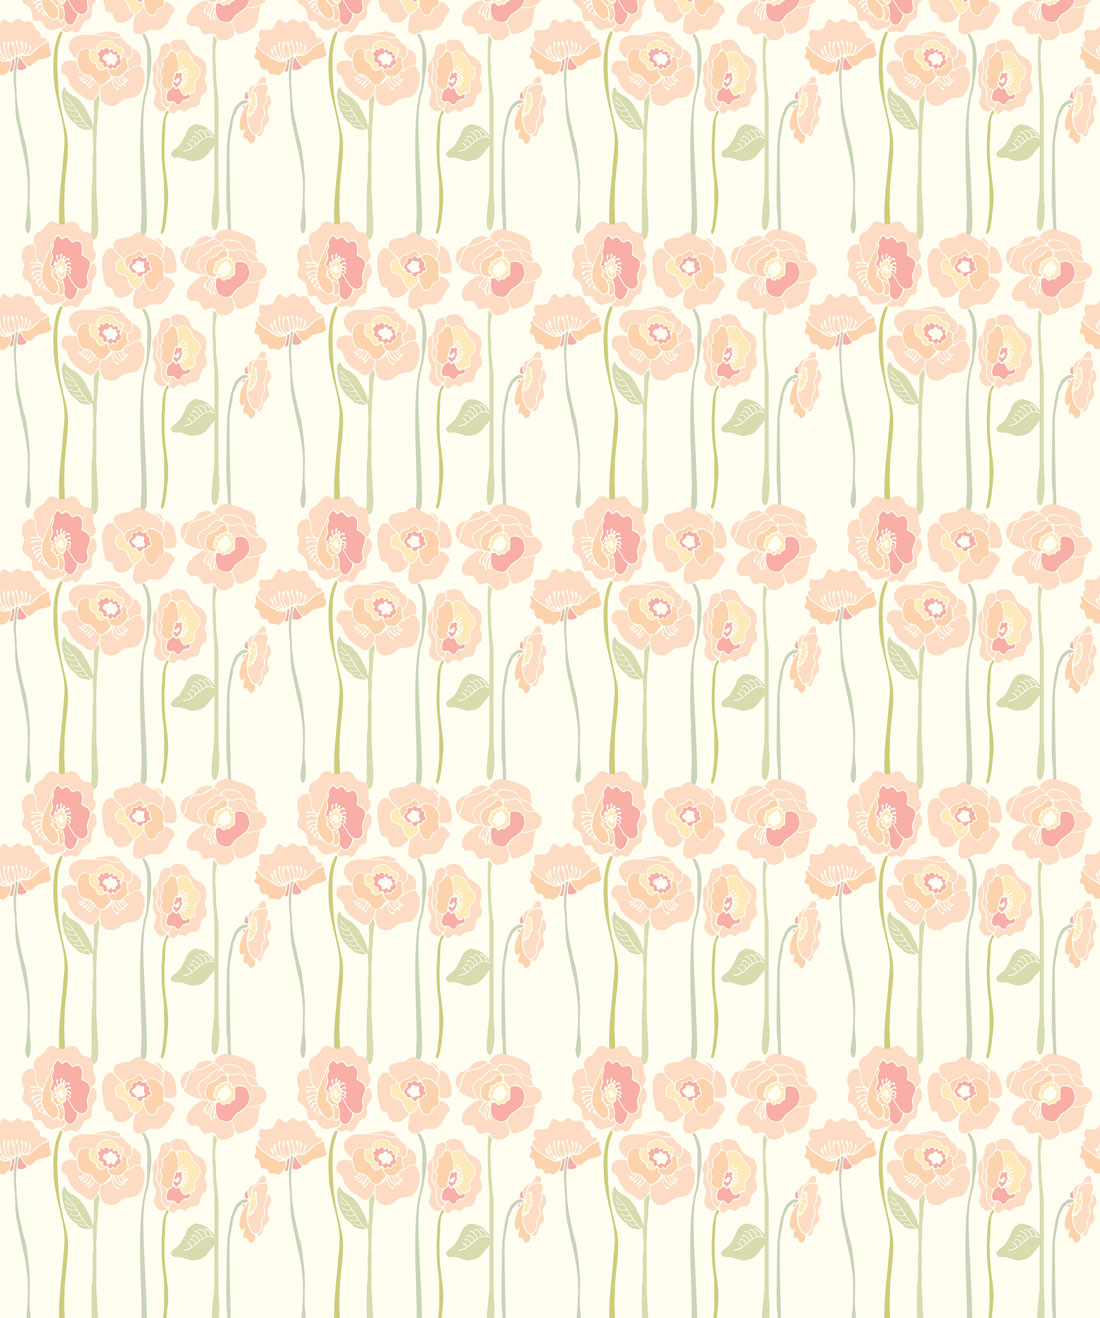 Long Stem Posies Wallpaper